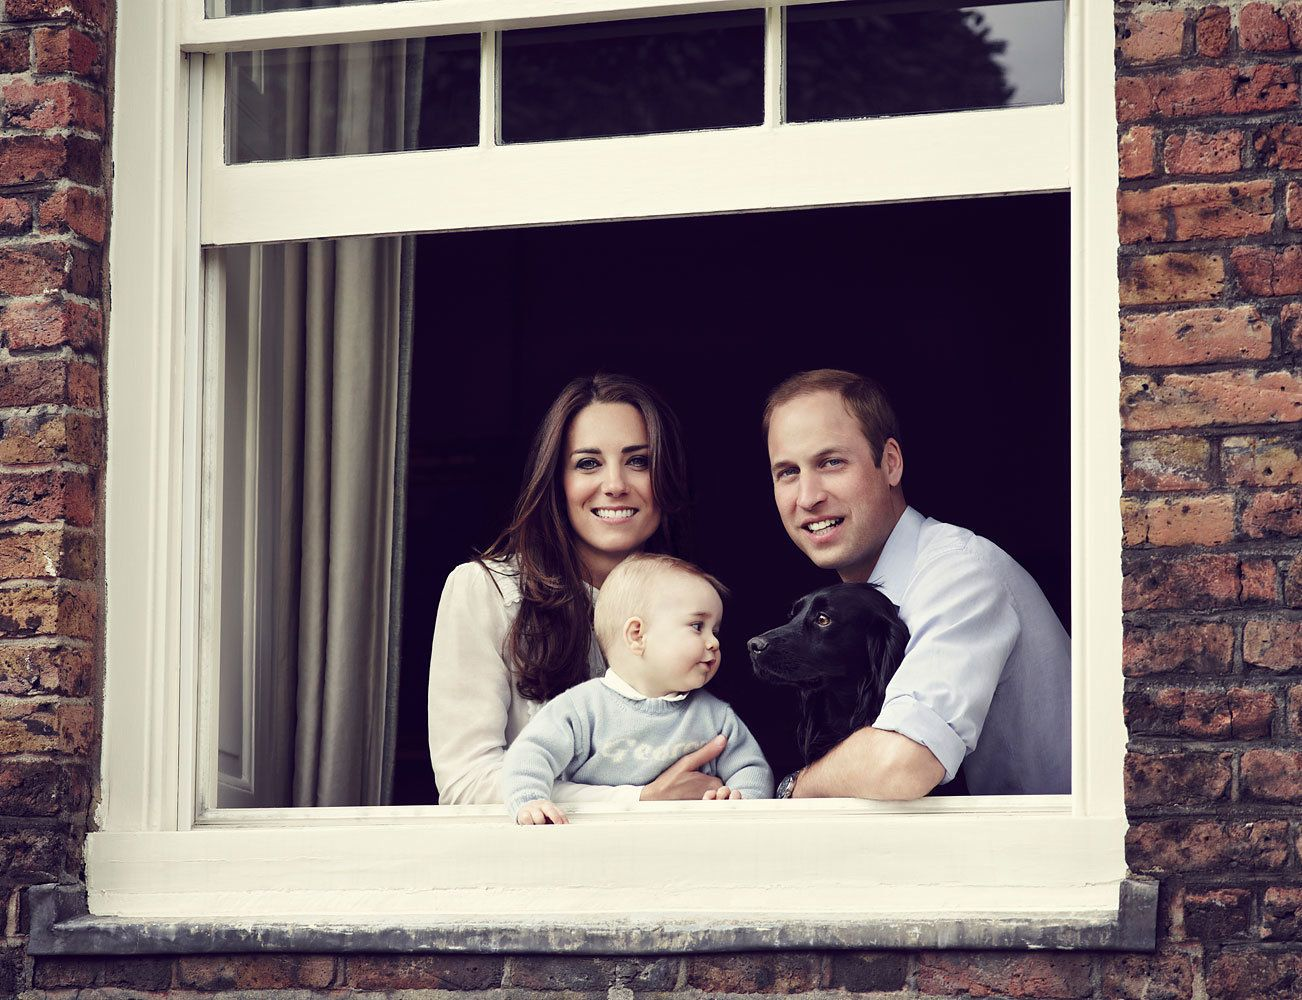 Family photo taken at Kensington Palace in March 2014.